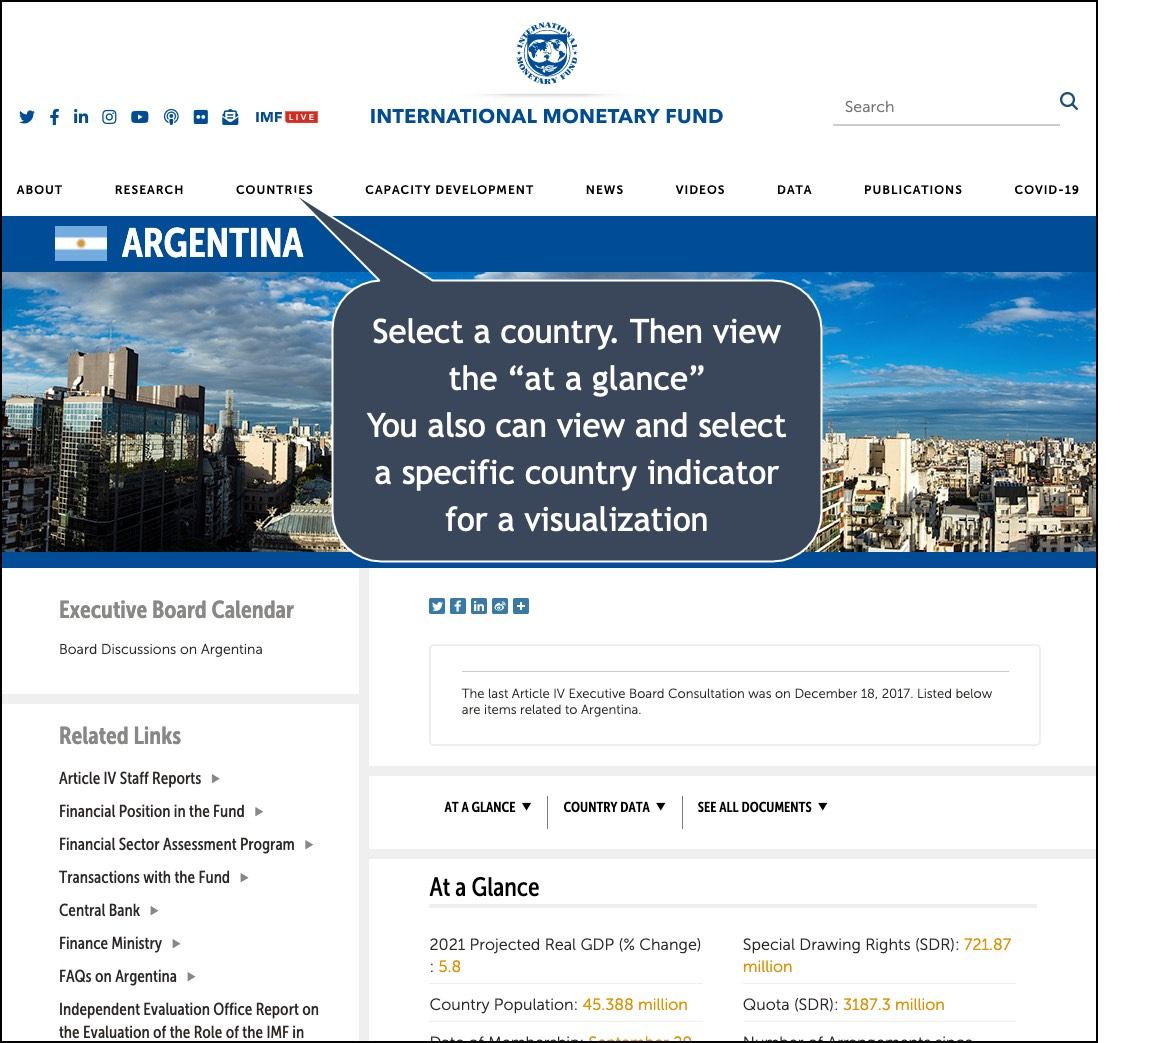 Image of IMF search on a country, shown is argentina